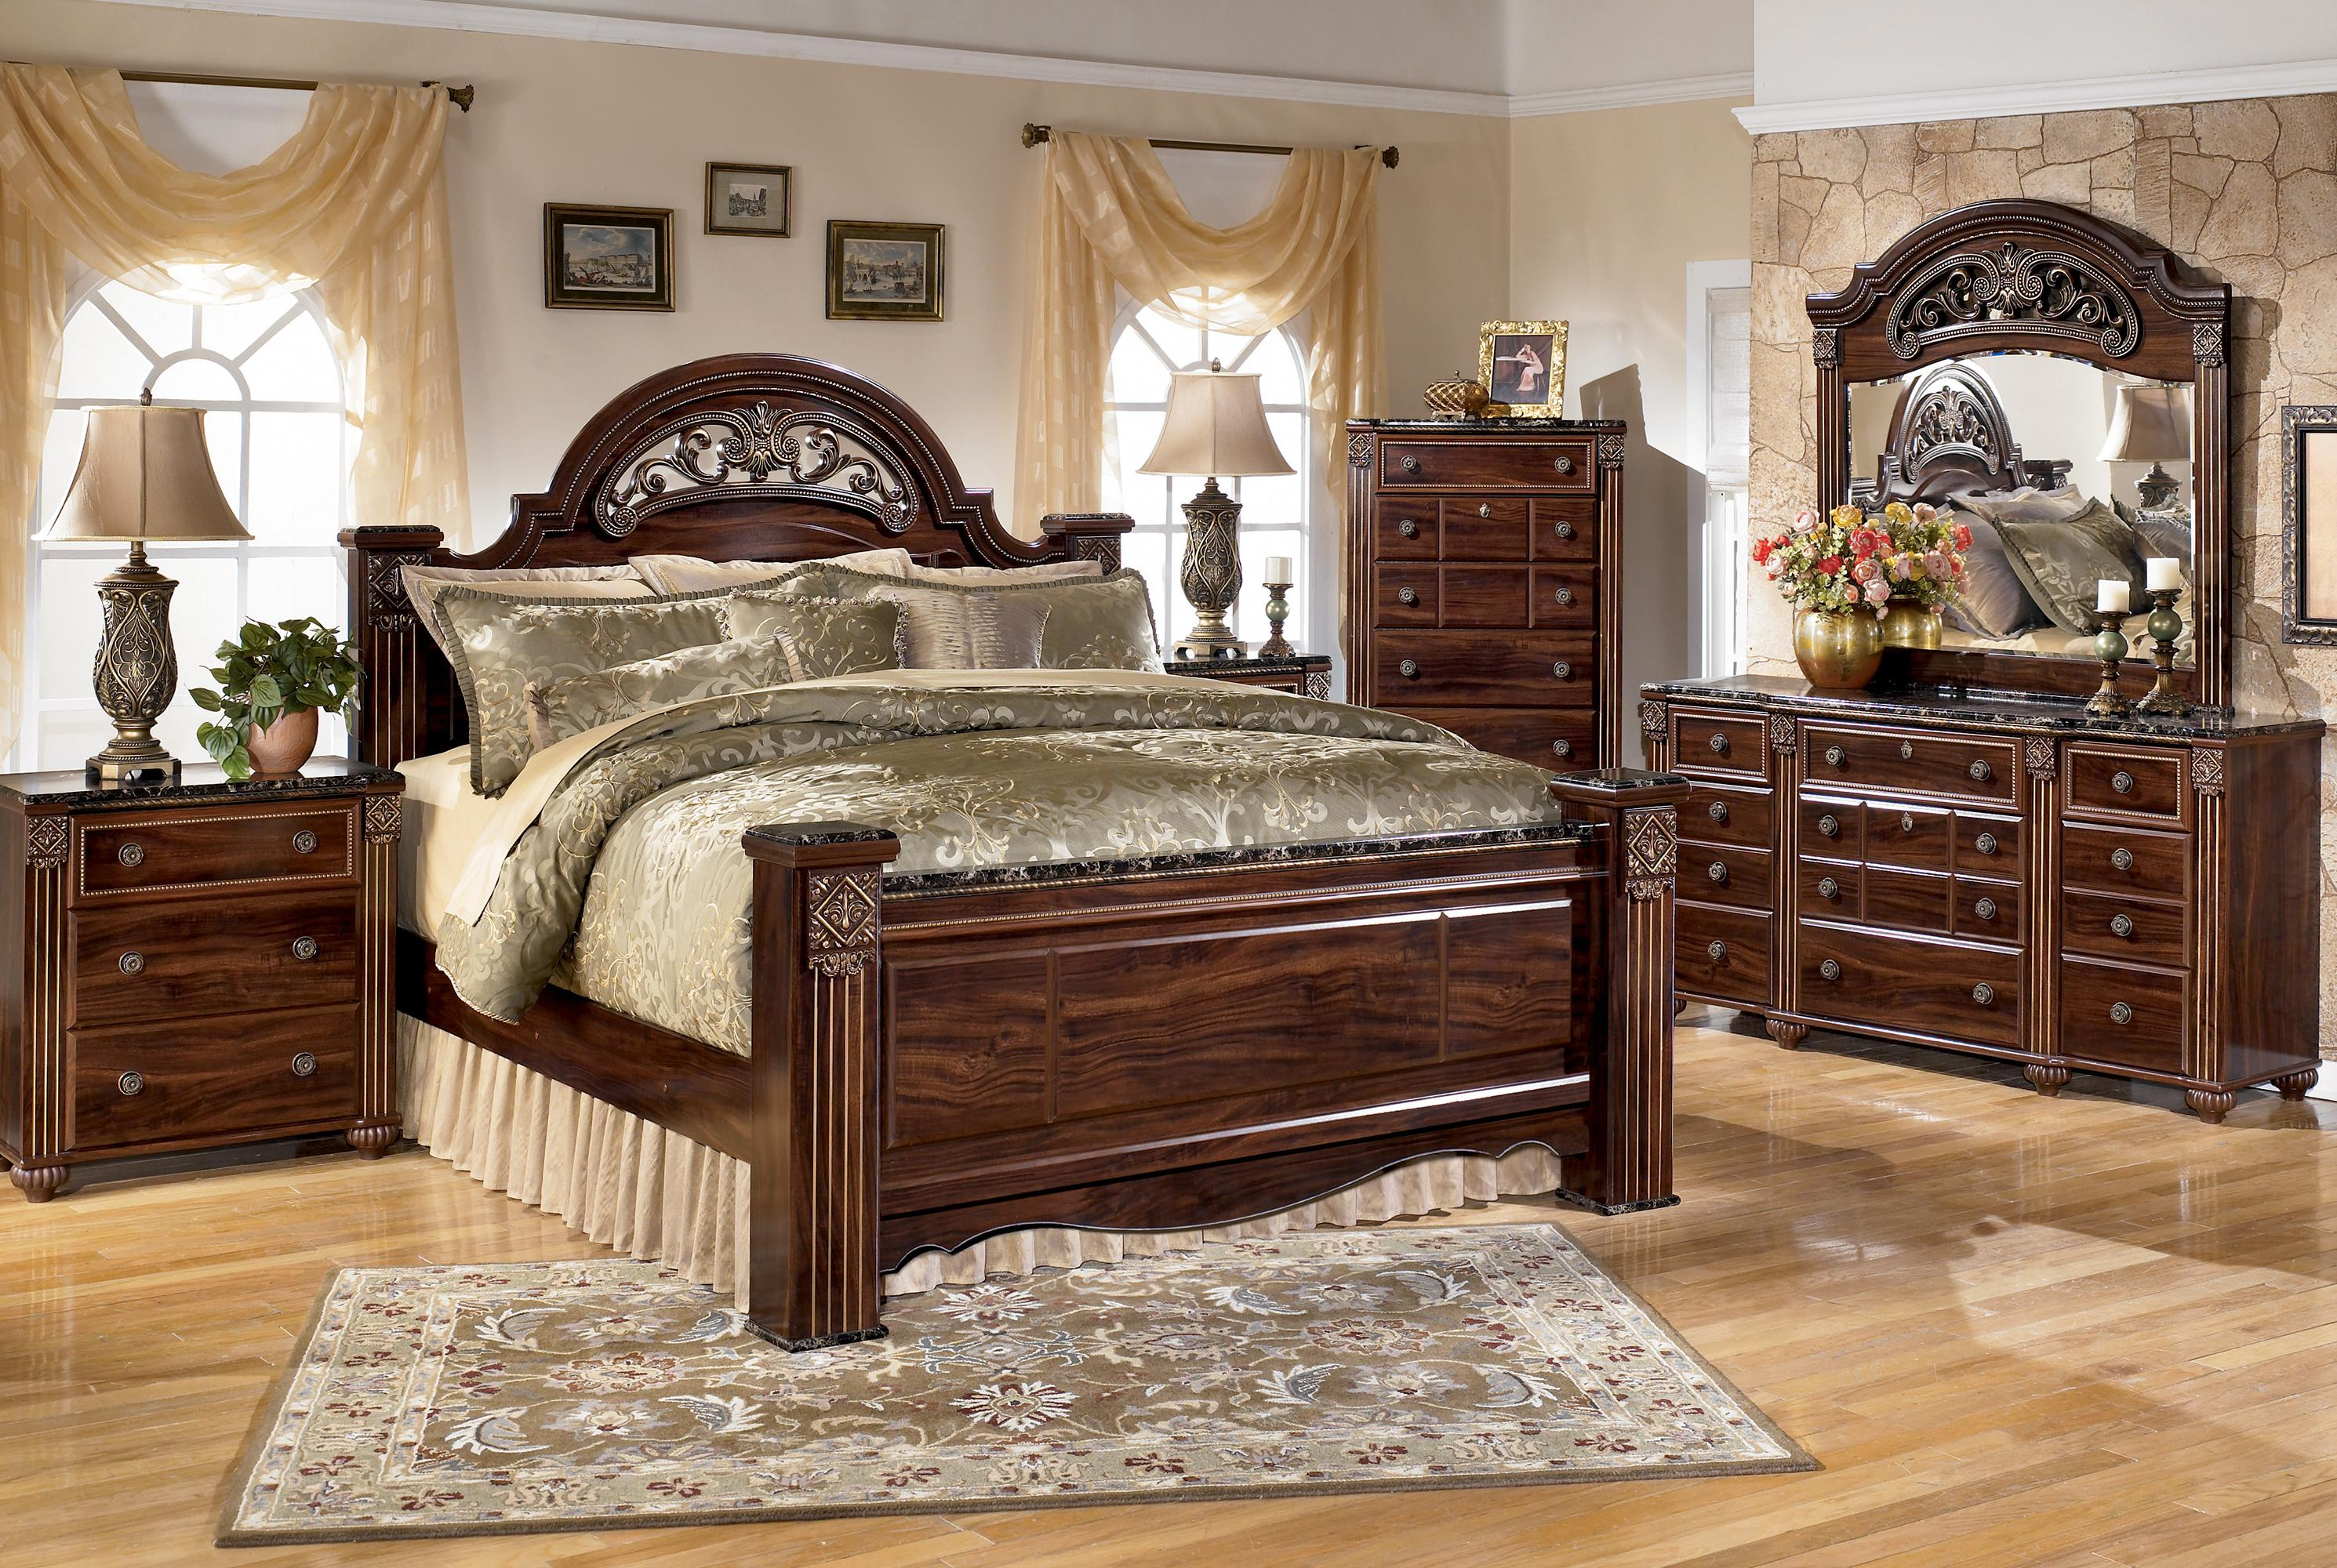 Signature Design by Ashley Gabriela Queen Bedroom Group - Item Number: B347 Q Bedroom Group 1